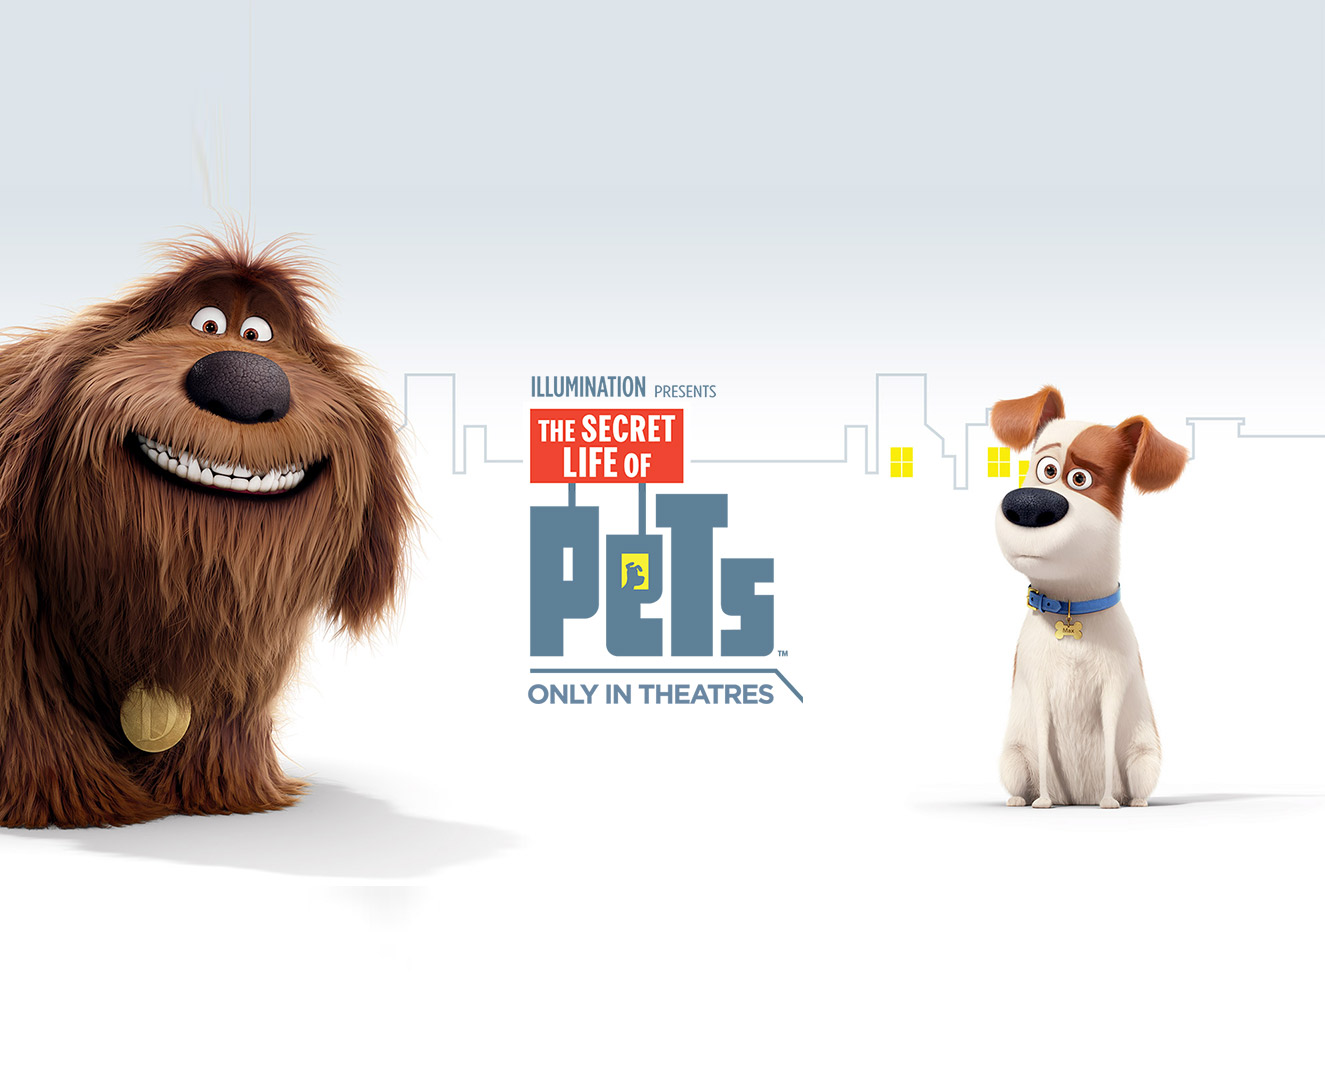 The Secret Life Of Pets Wallpaper: Secret Life Of Pets Movie Wallpaper